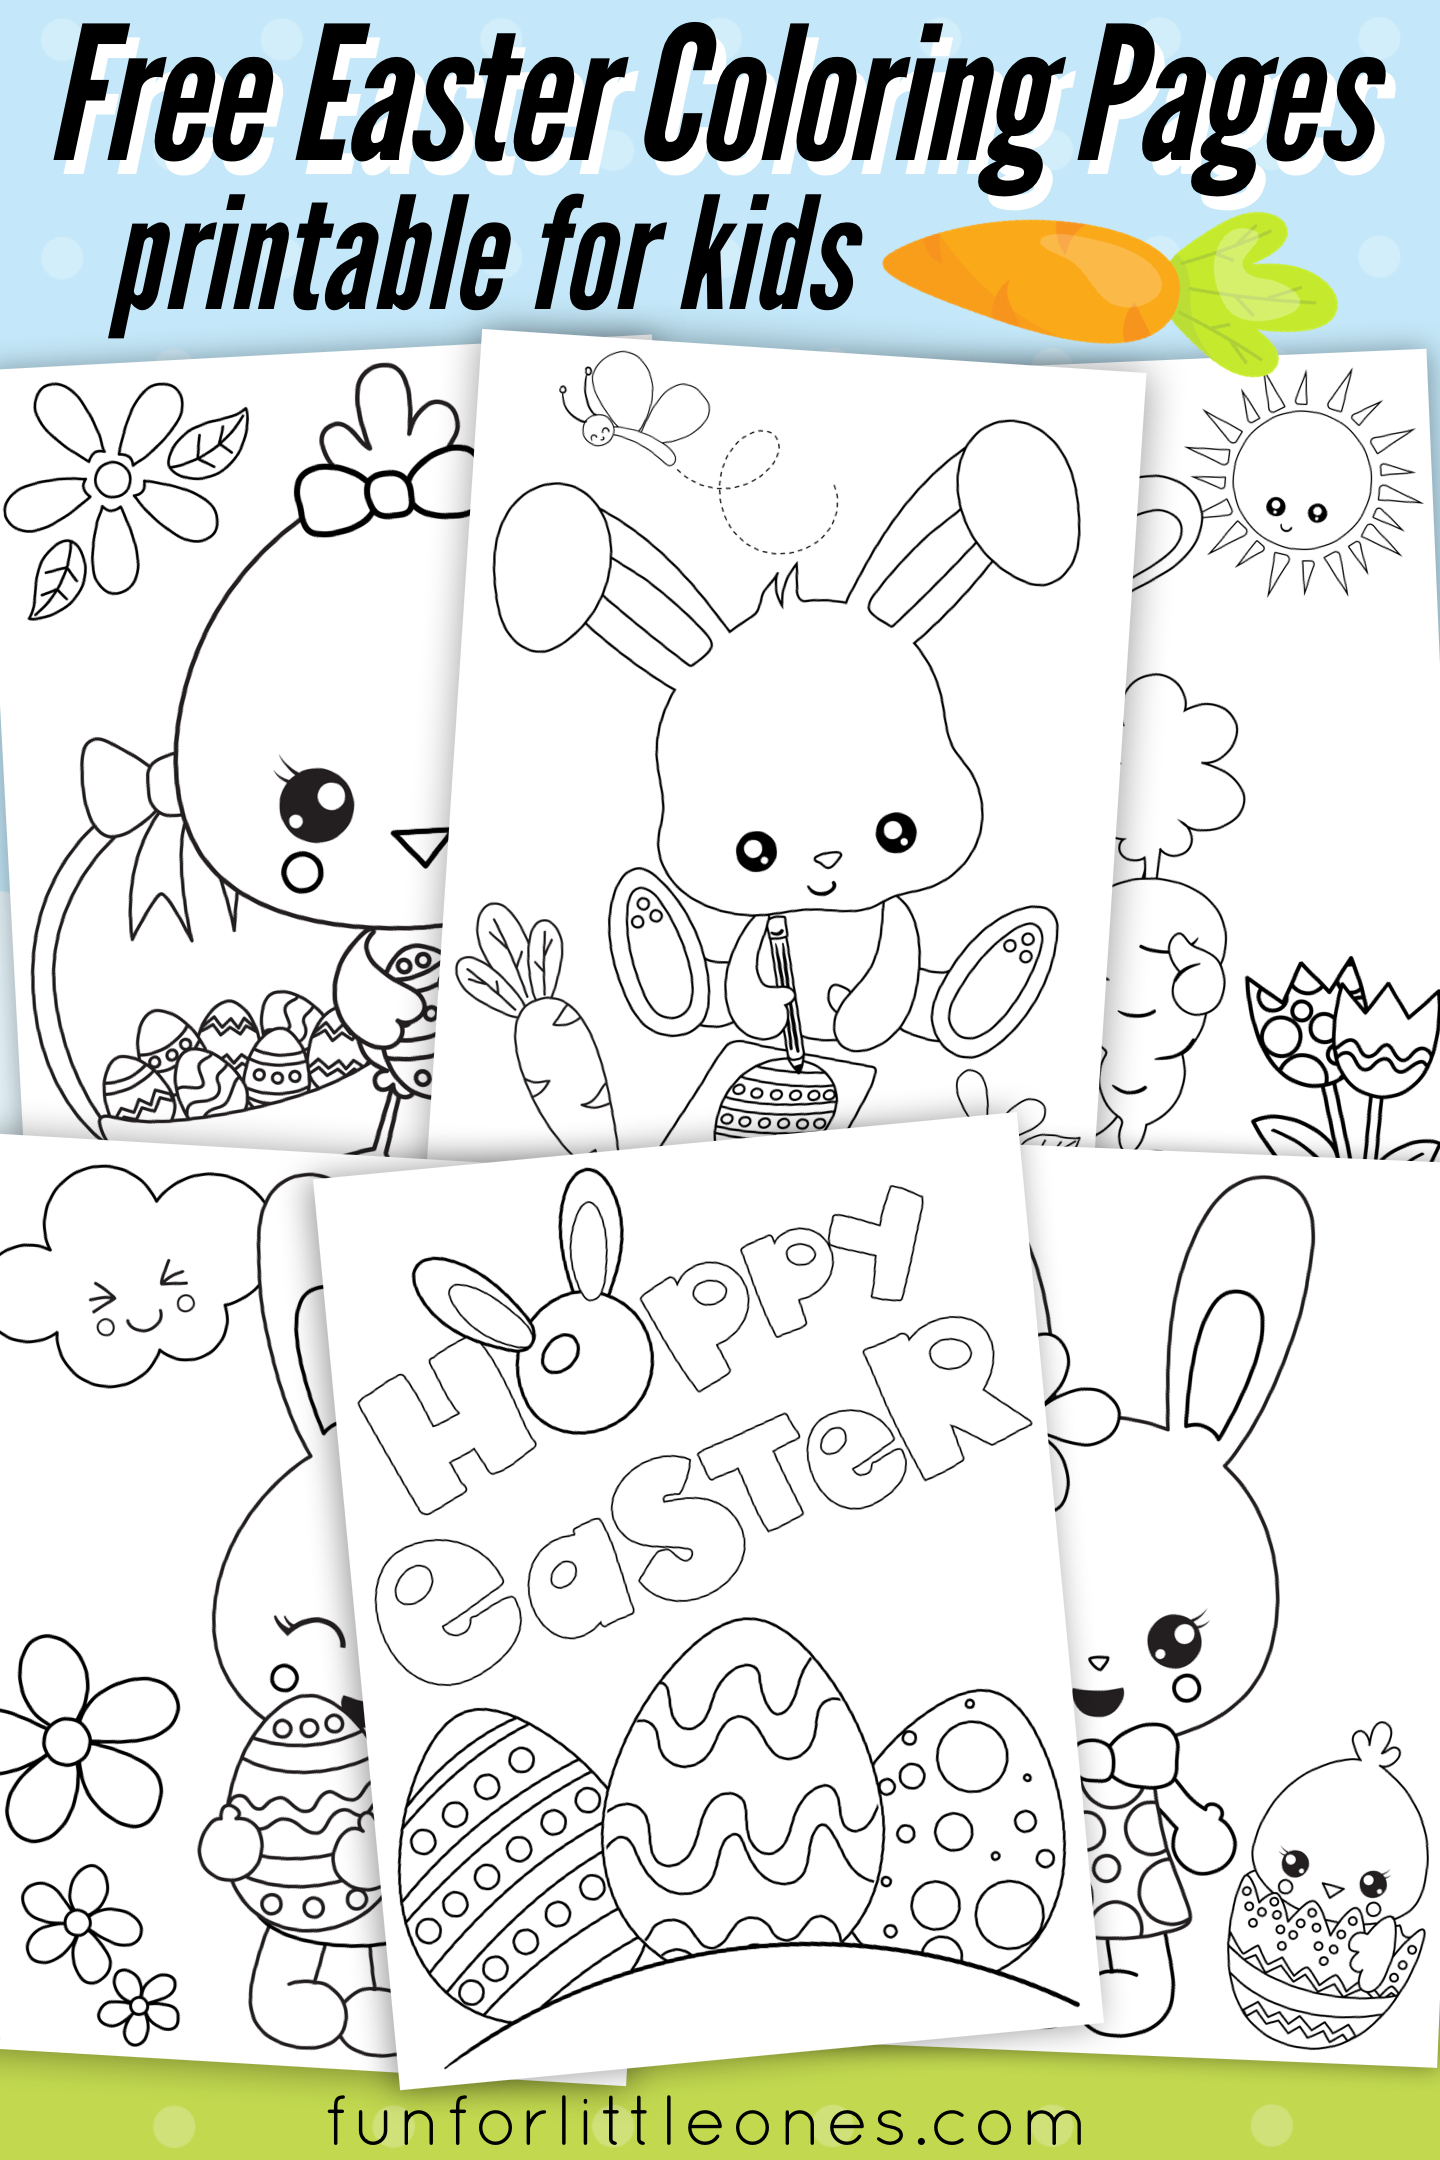 Easter Coloring Pages For Kids (Free Printable) | Fun For Little - Free Printable Easter Coloring Pages For Toddlers